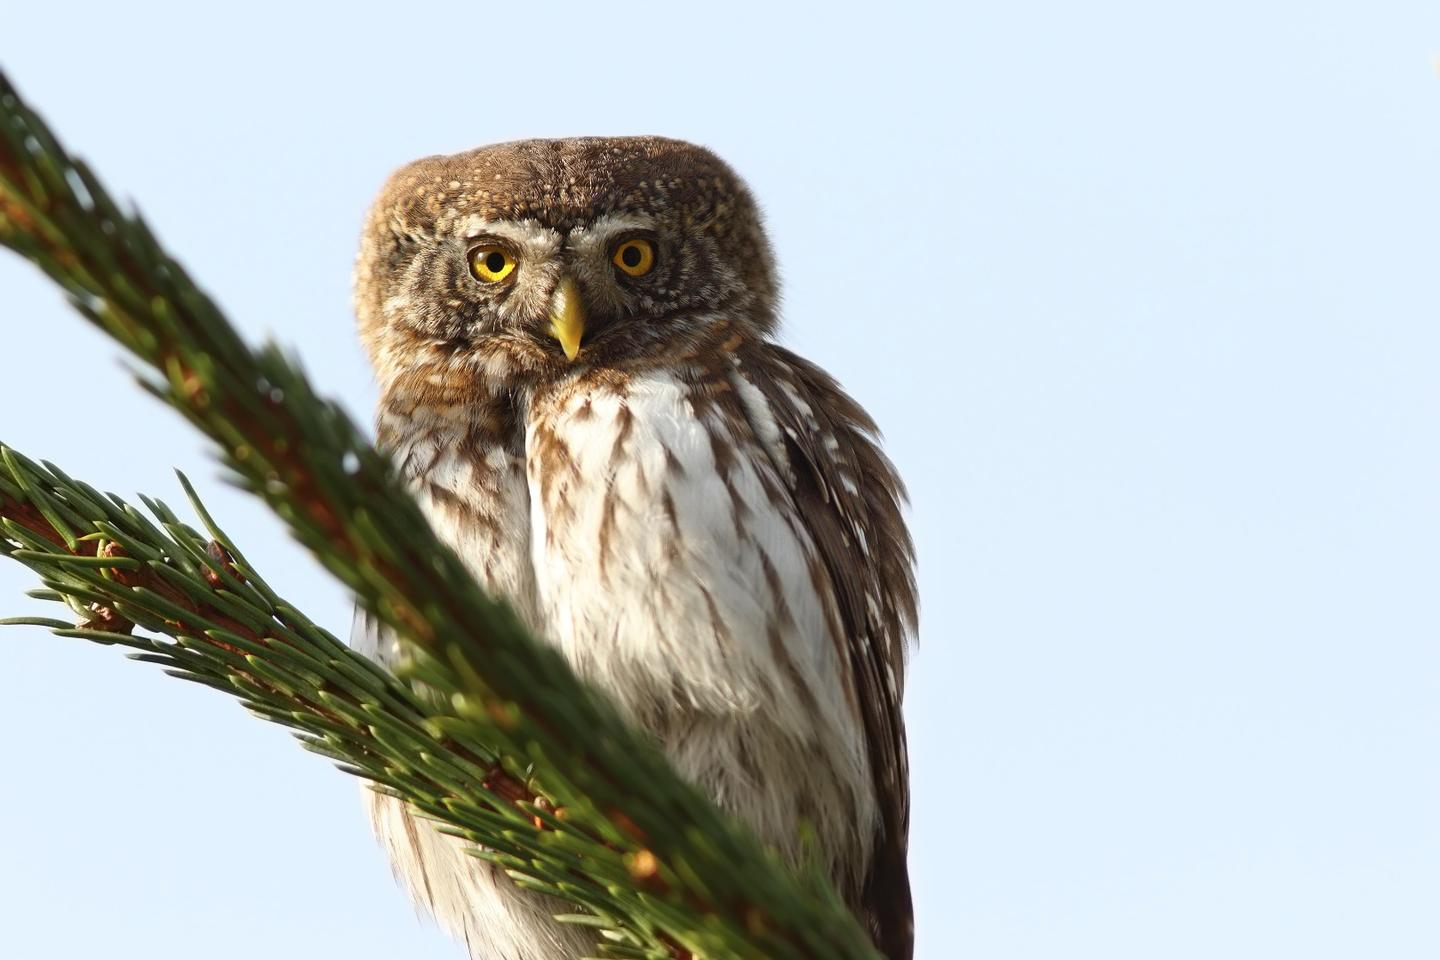 The researchers introduced a model of a pygmy owl, like the live one seen here, to see how the prey species responded